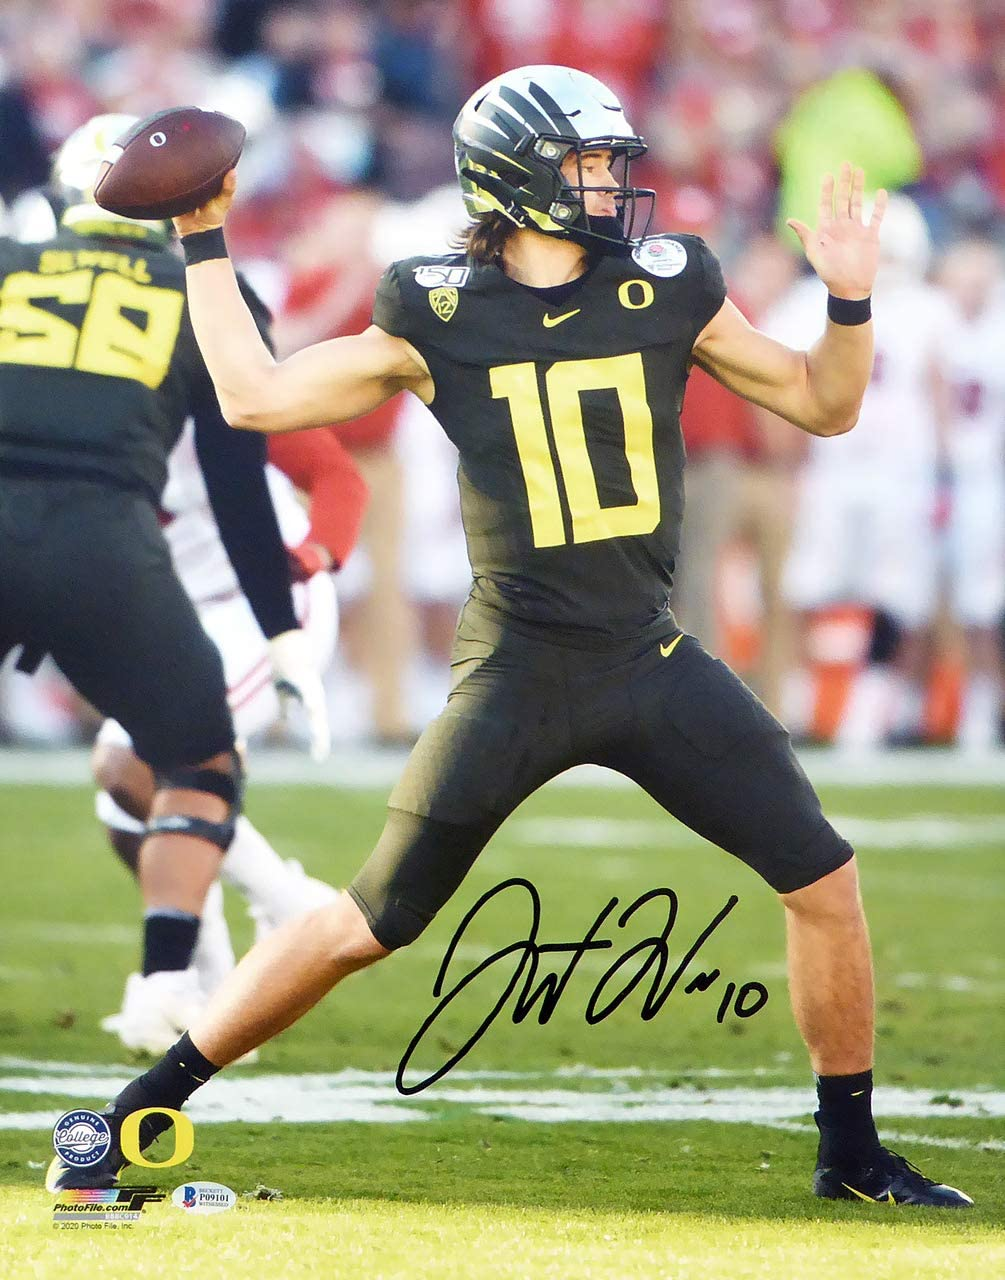 Justin Herbert Autographed 16x20 Photo Oregon Ducks Beckett Bas At Amazon S Sports Collectibles Store